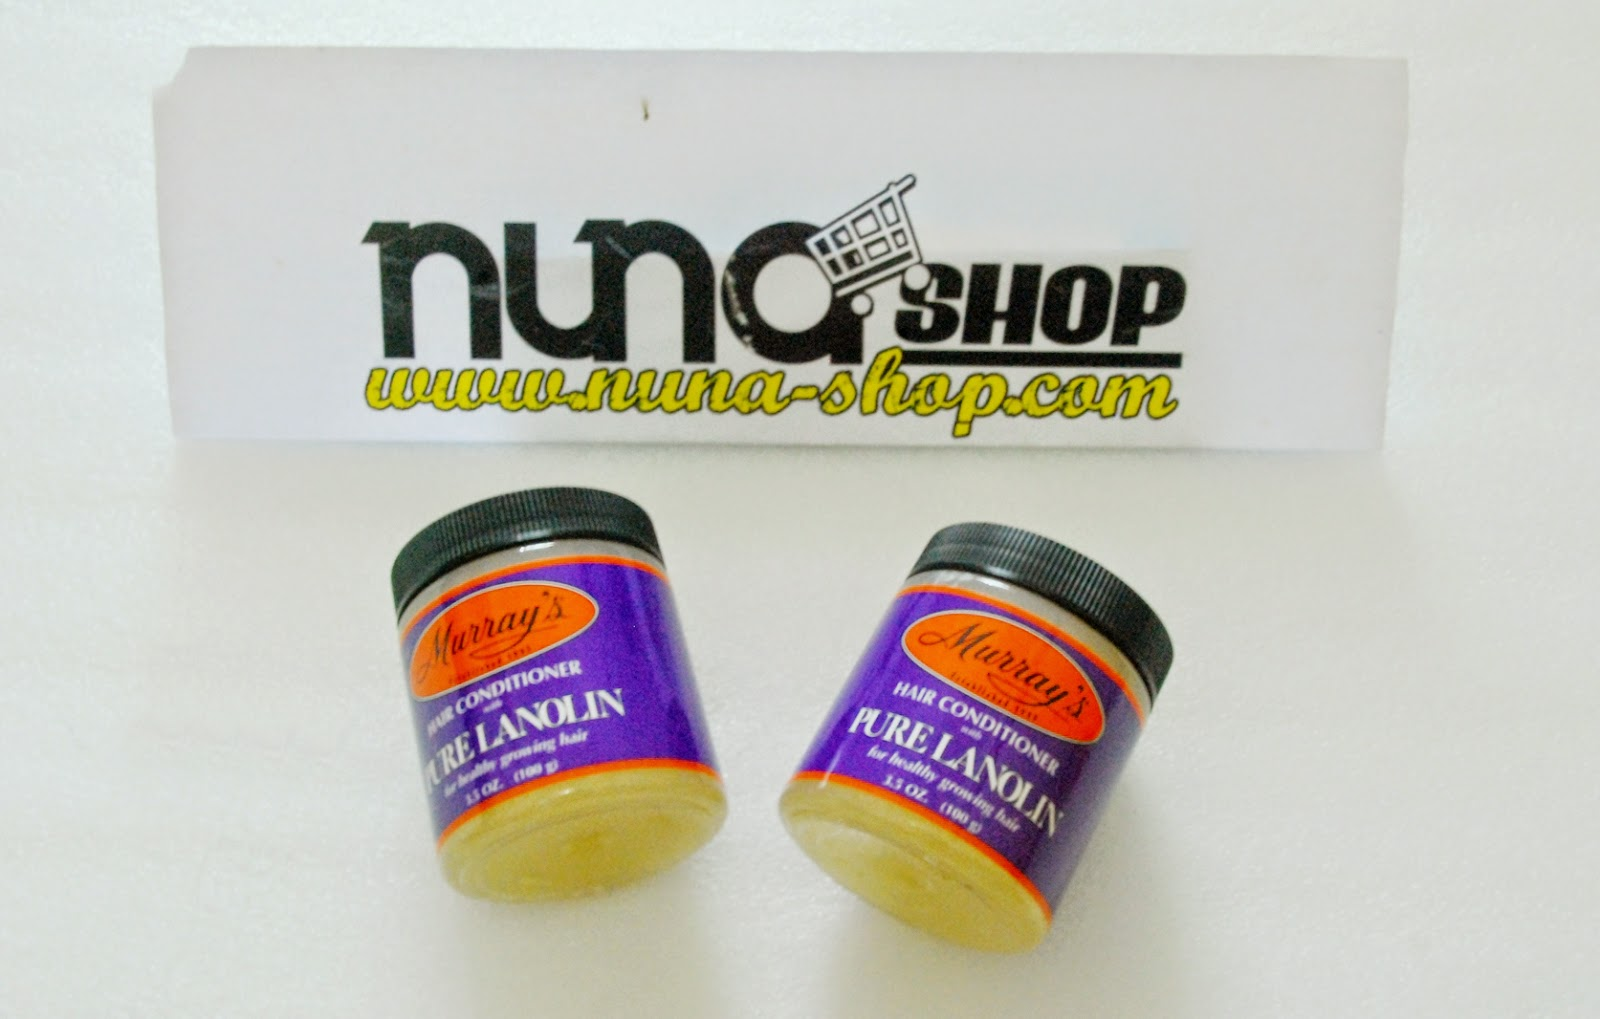 Toko Online Jual Murray's Hair Conditioner with Pure Lanolin